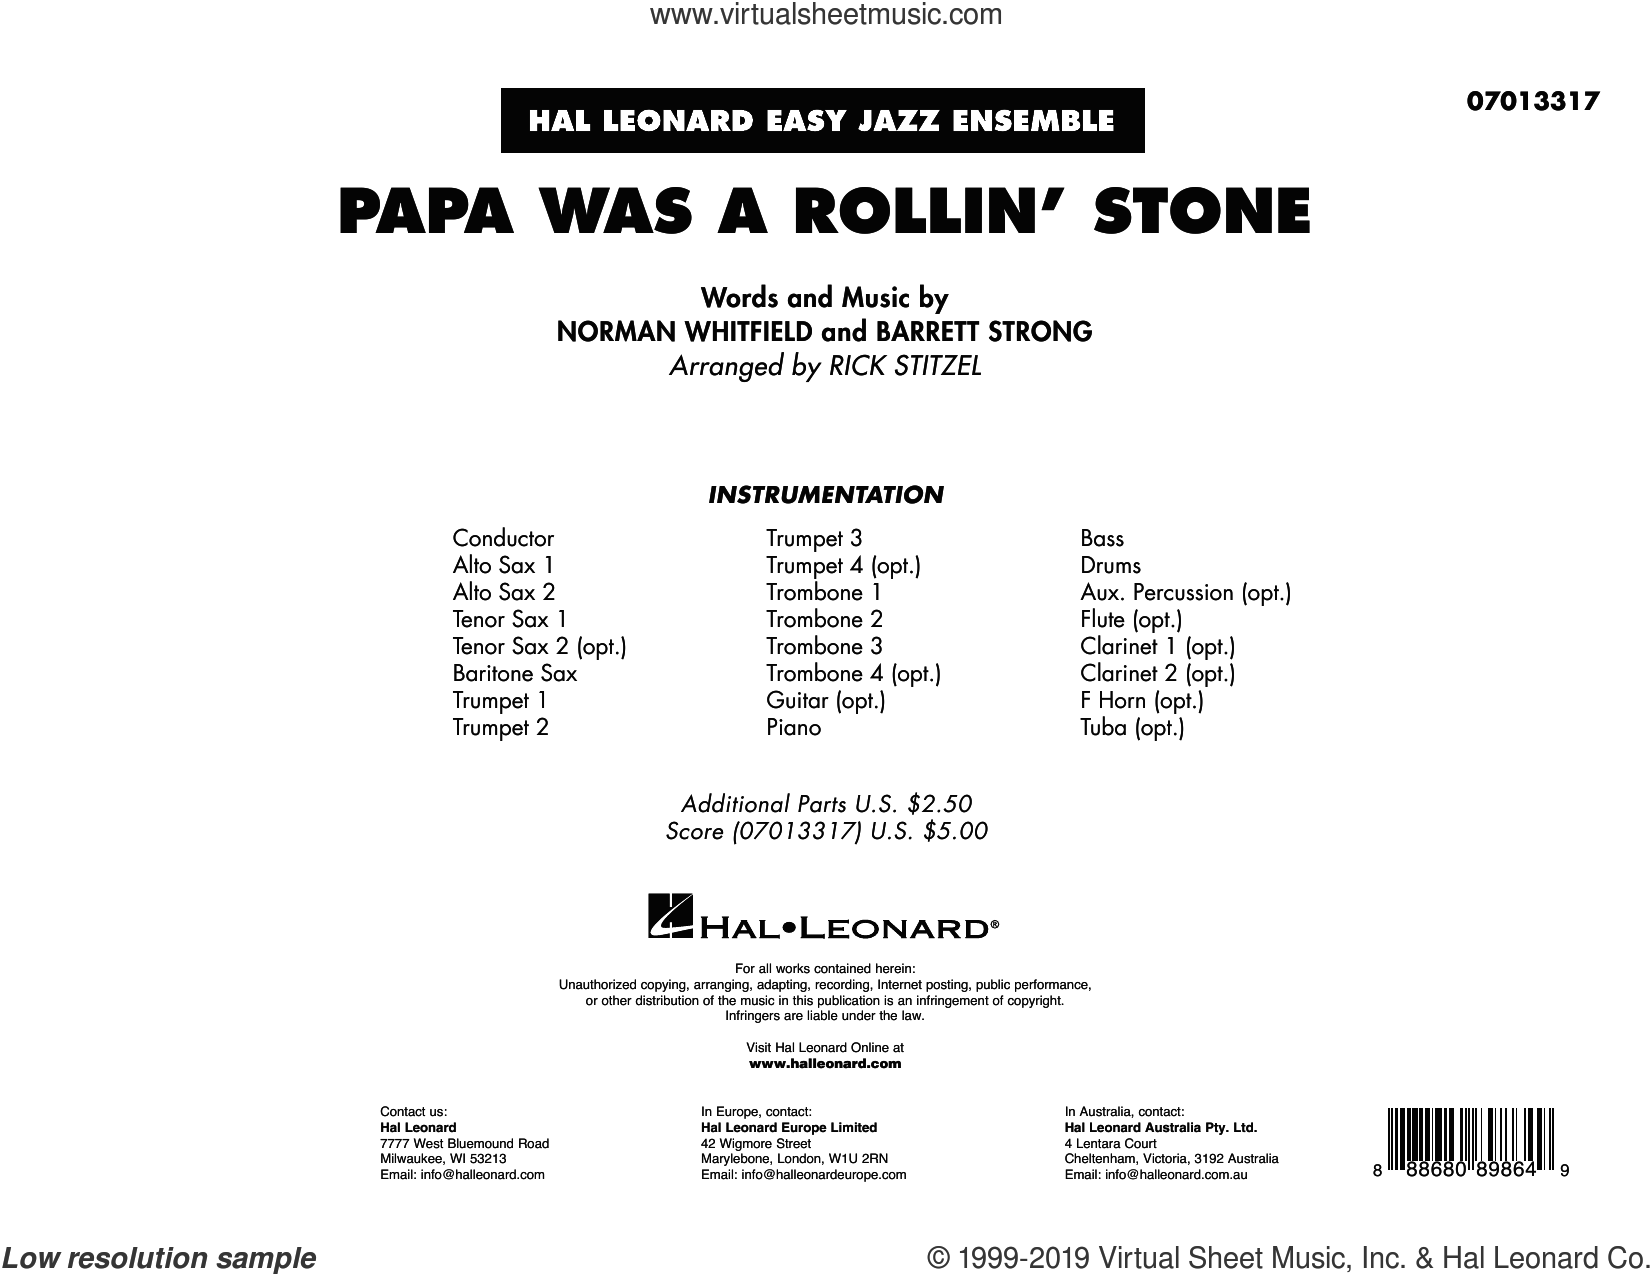 Papa Was a Rollin' Stone (COMPLETE) sheet music for jazz band by The Temptations, Barrett Strong, Norman Whitfield and Rick Stitzel, intermediate skill level